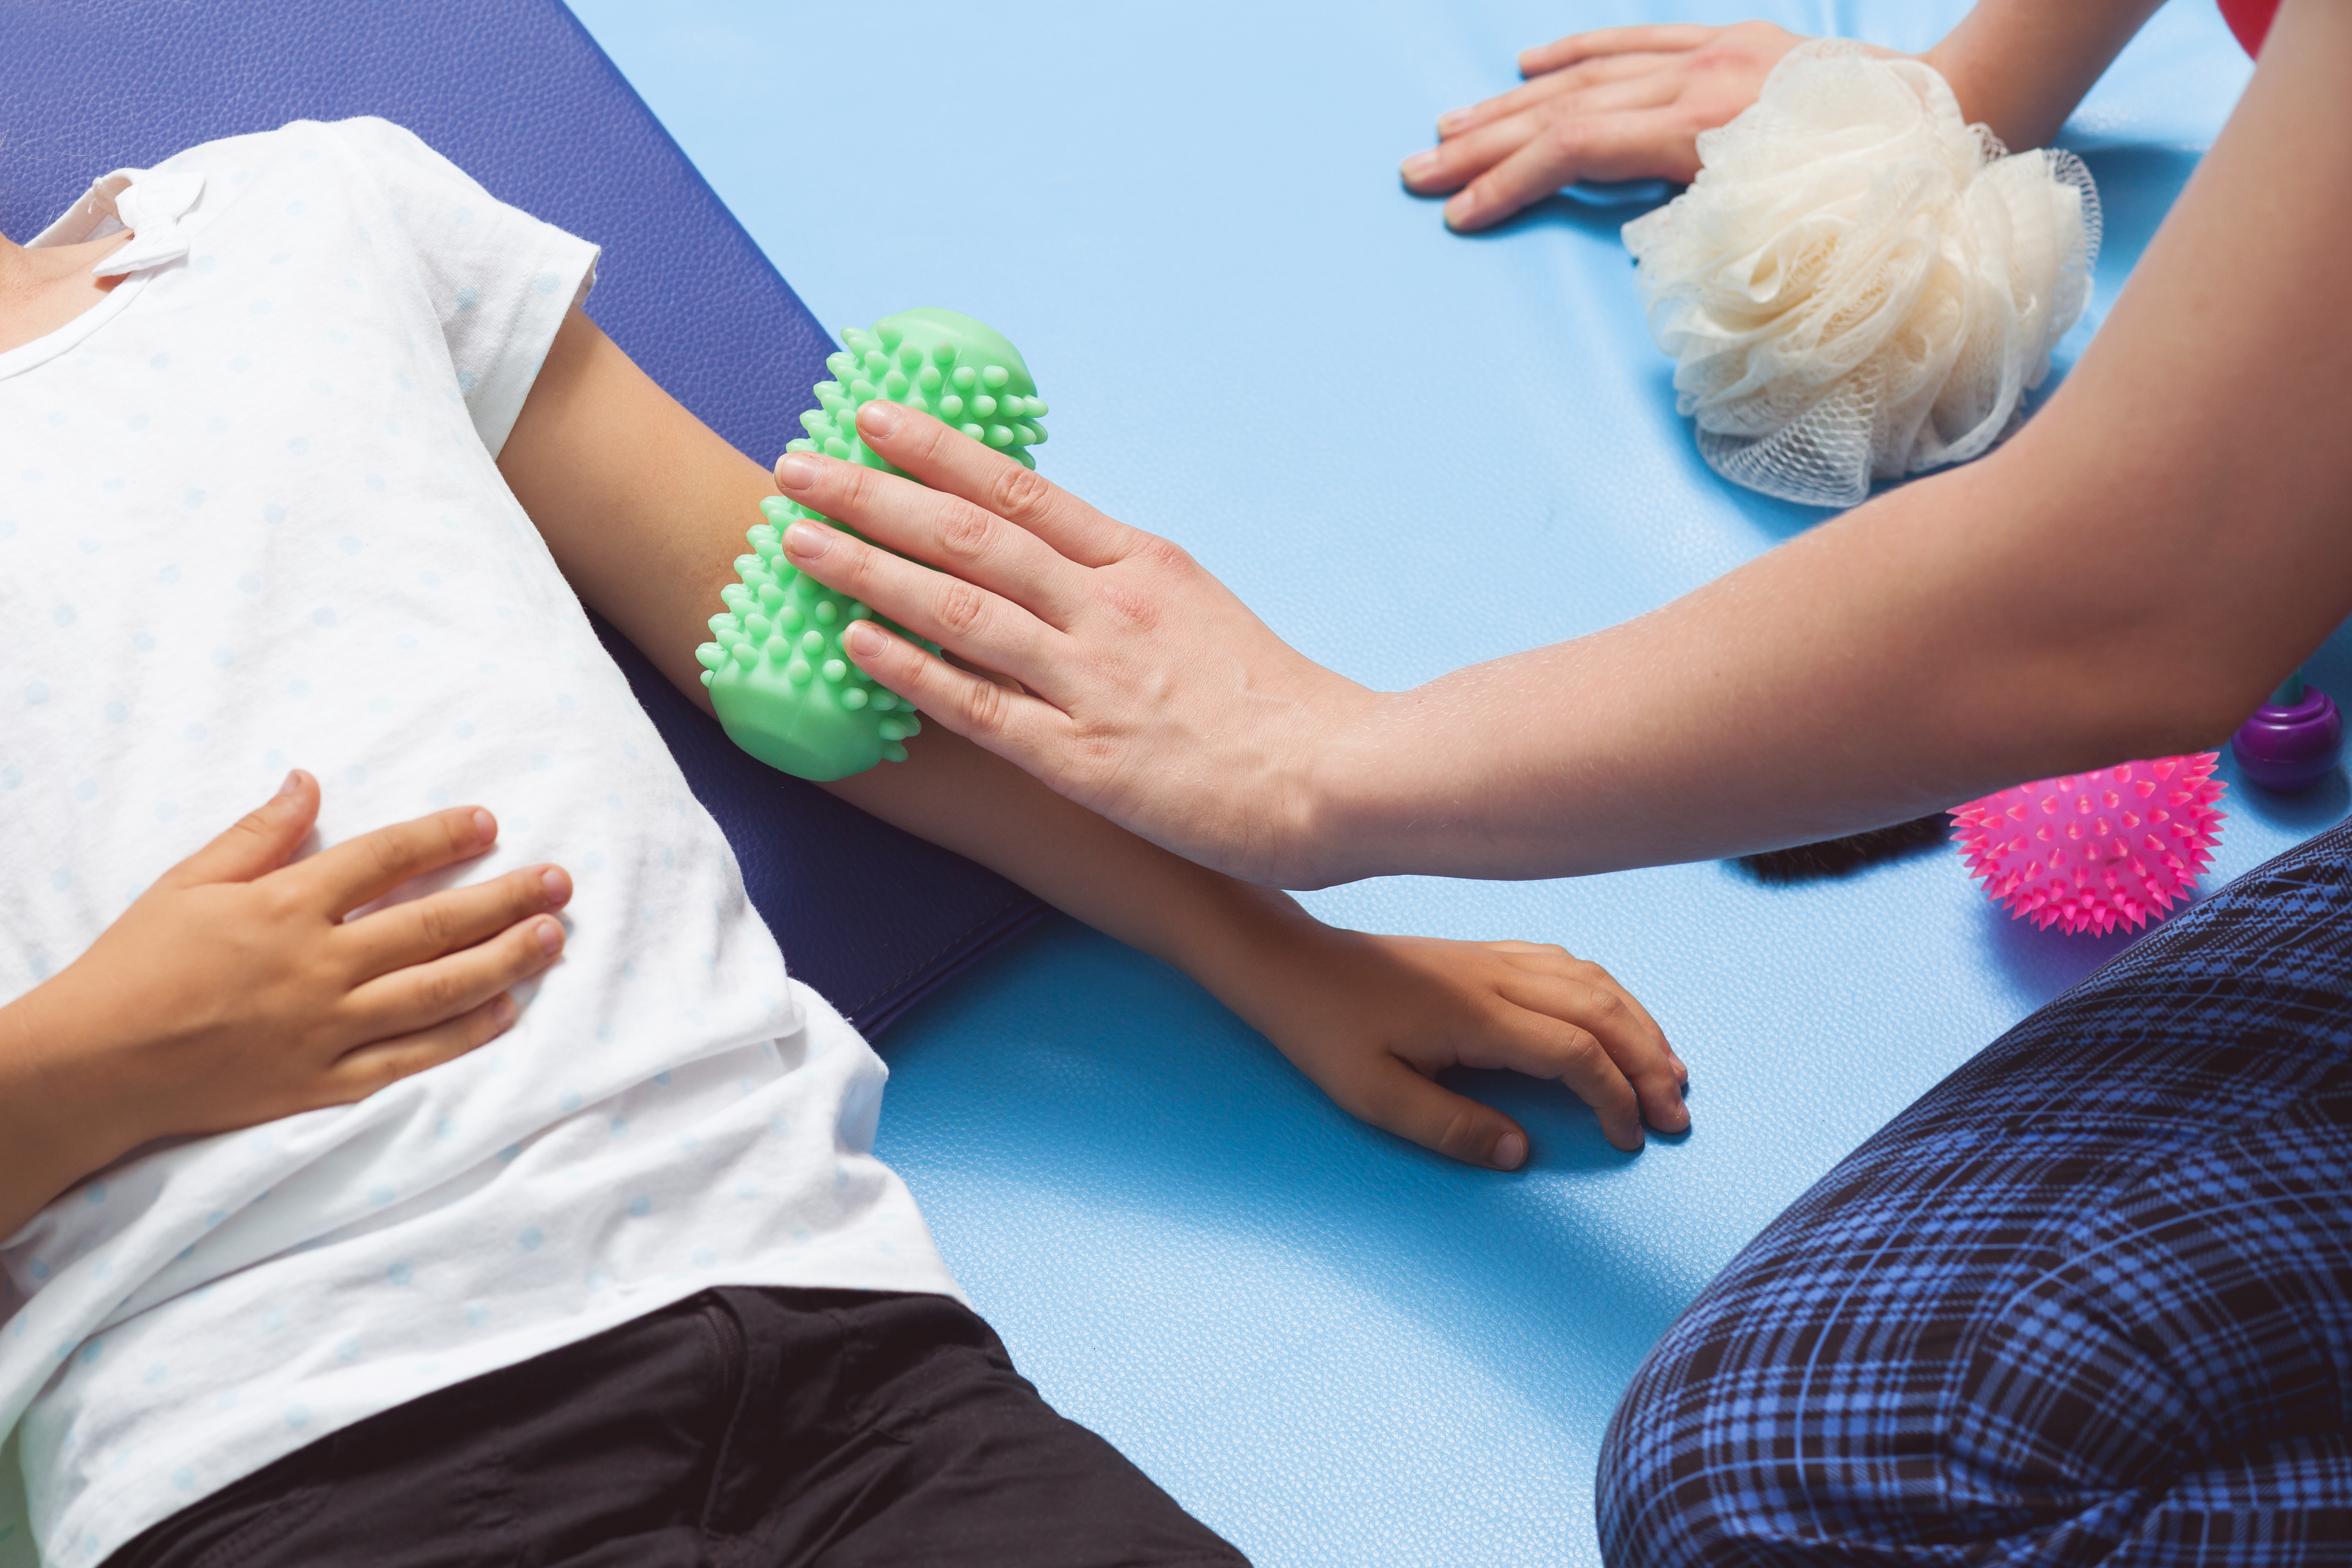 Therapist making a roll massage on young girl's arm